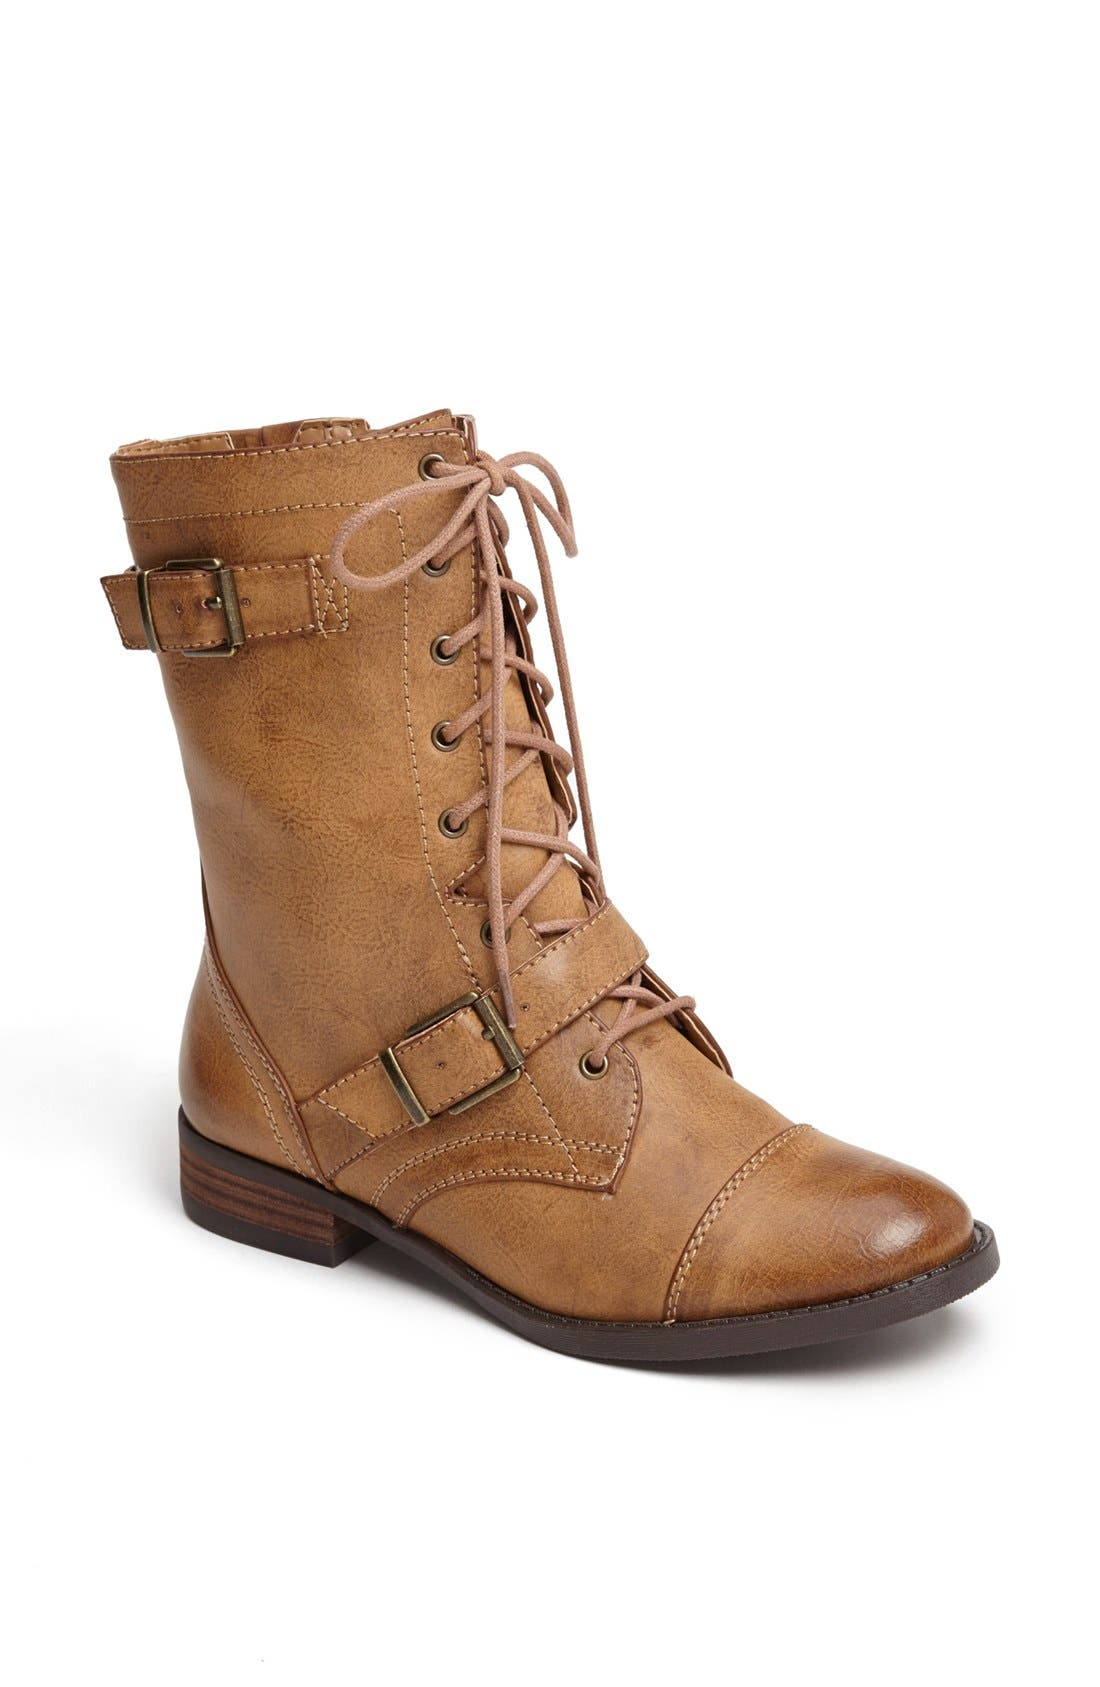 Alternate Image 1 Selected - Sole Society 'Nessie' Lace-Up Bootie